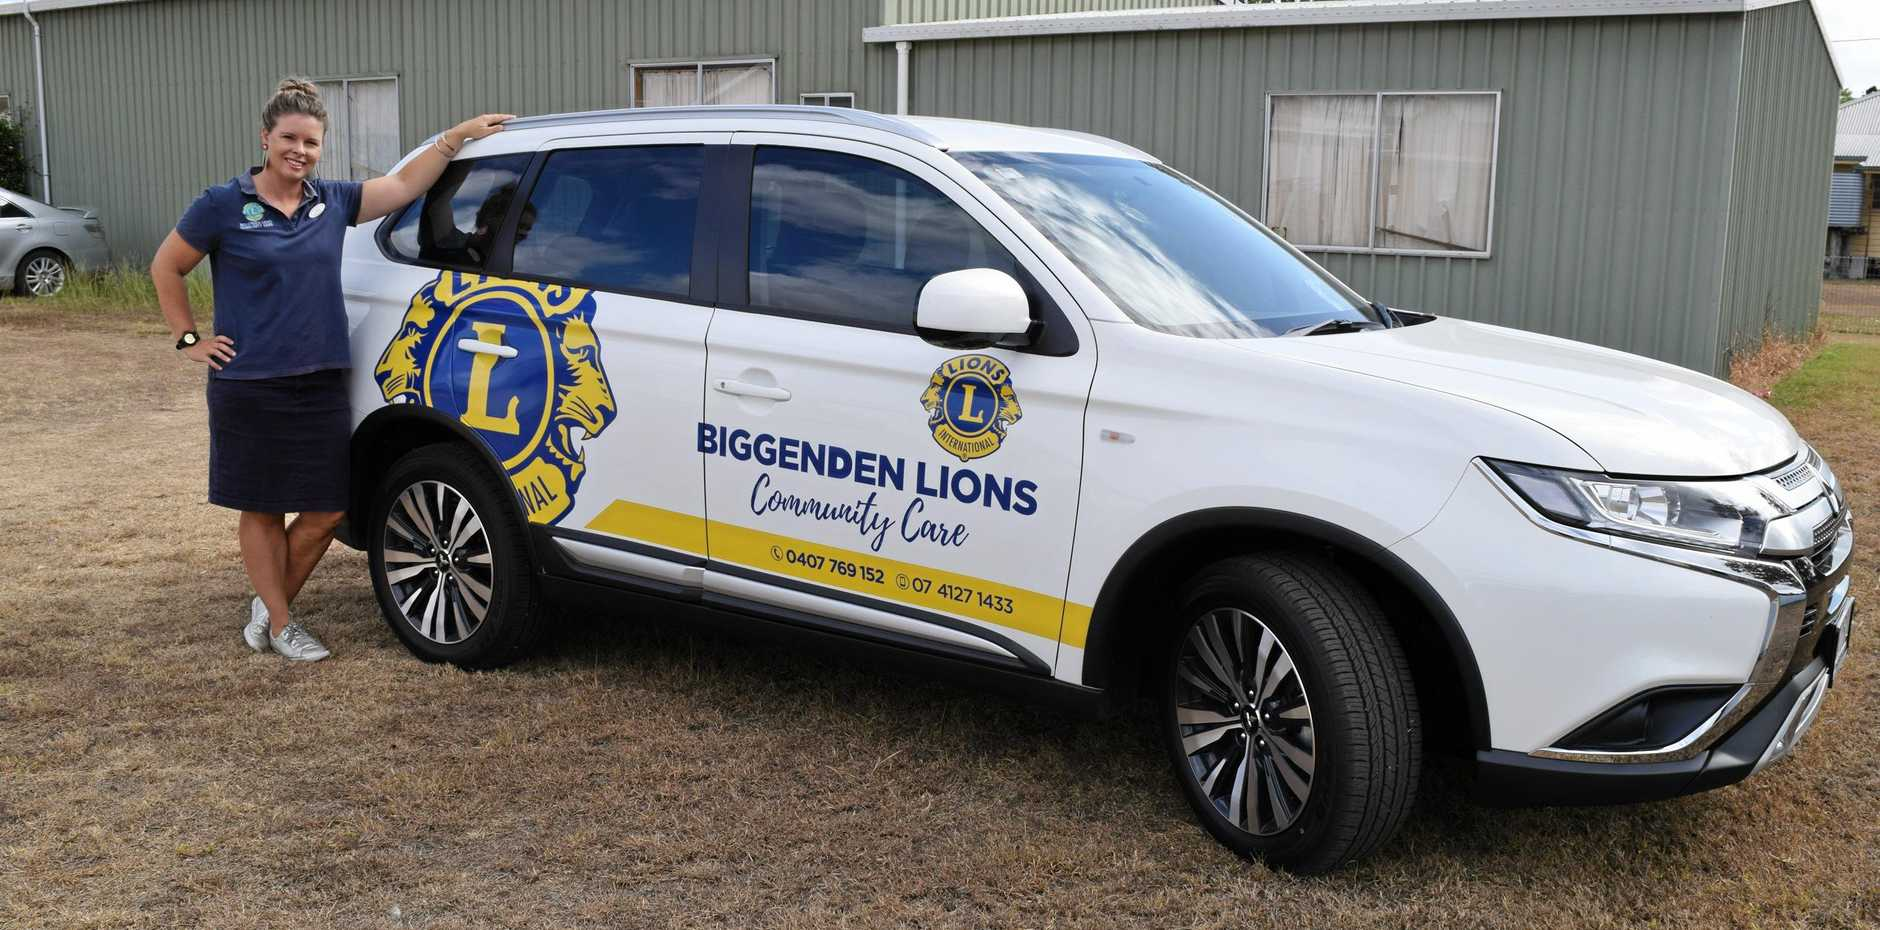 WELCOME SUPPORT: Biggenden Lions Community Care co-ordinator Leesa Sharps with the group's new car thanks to a grant.